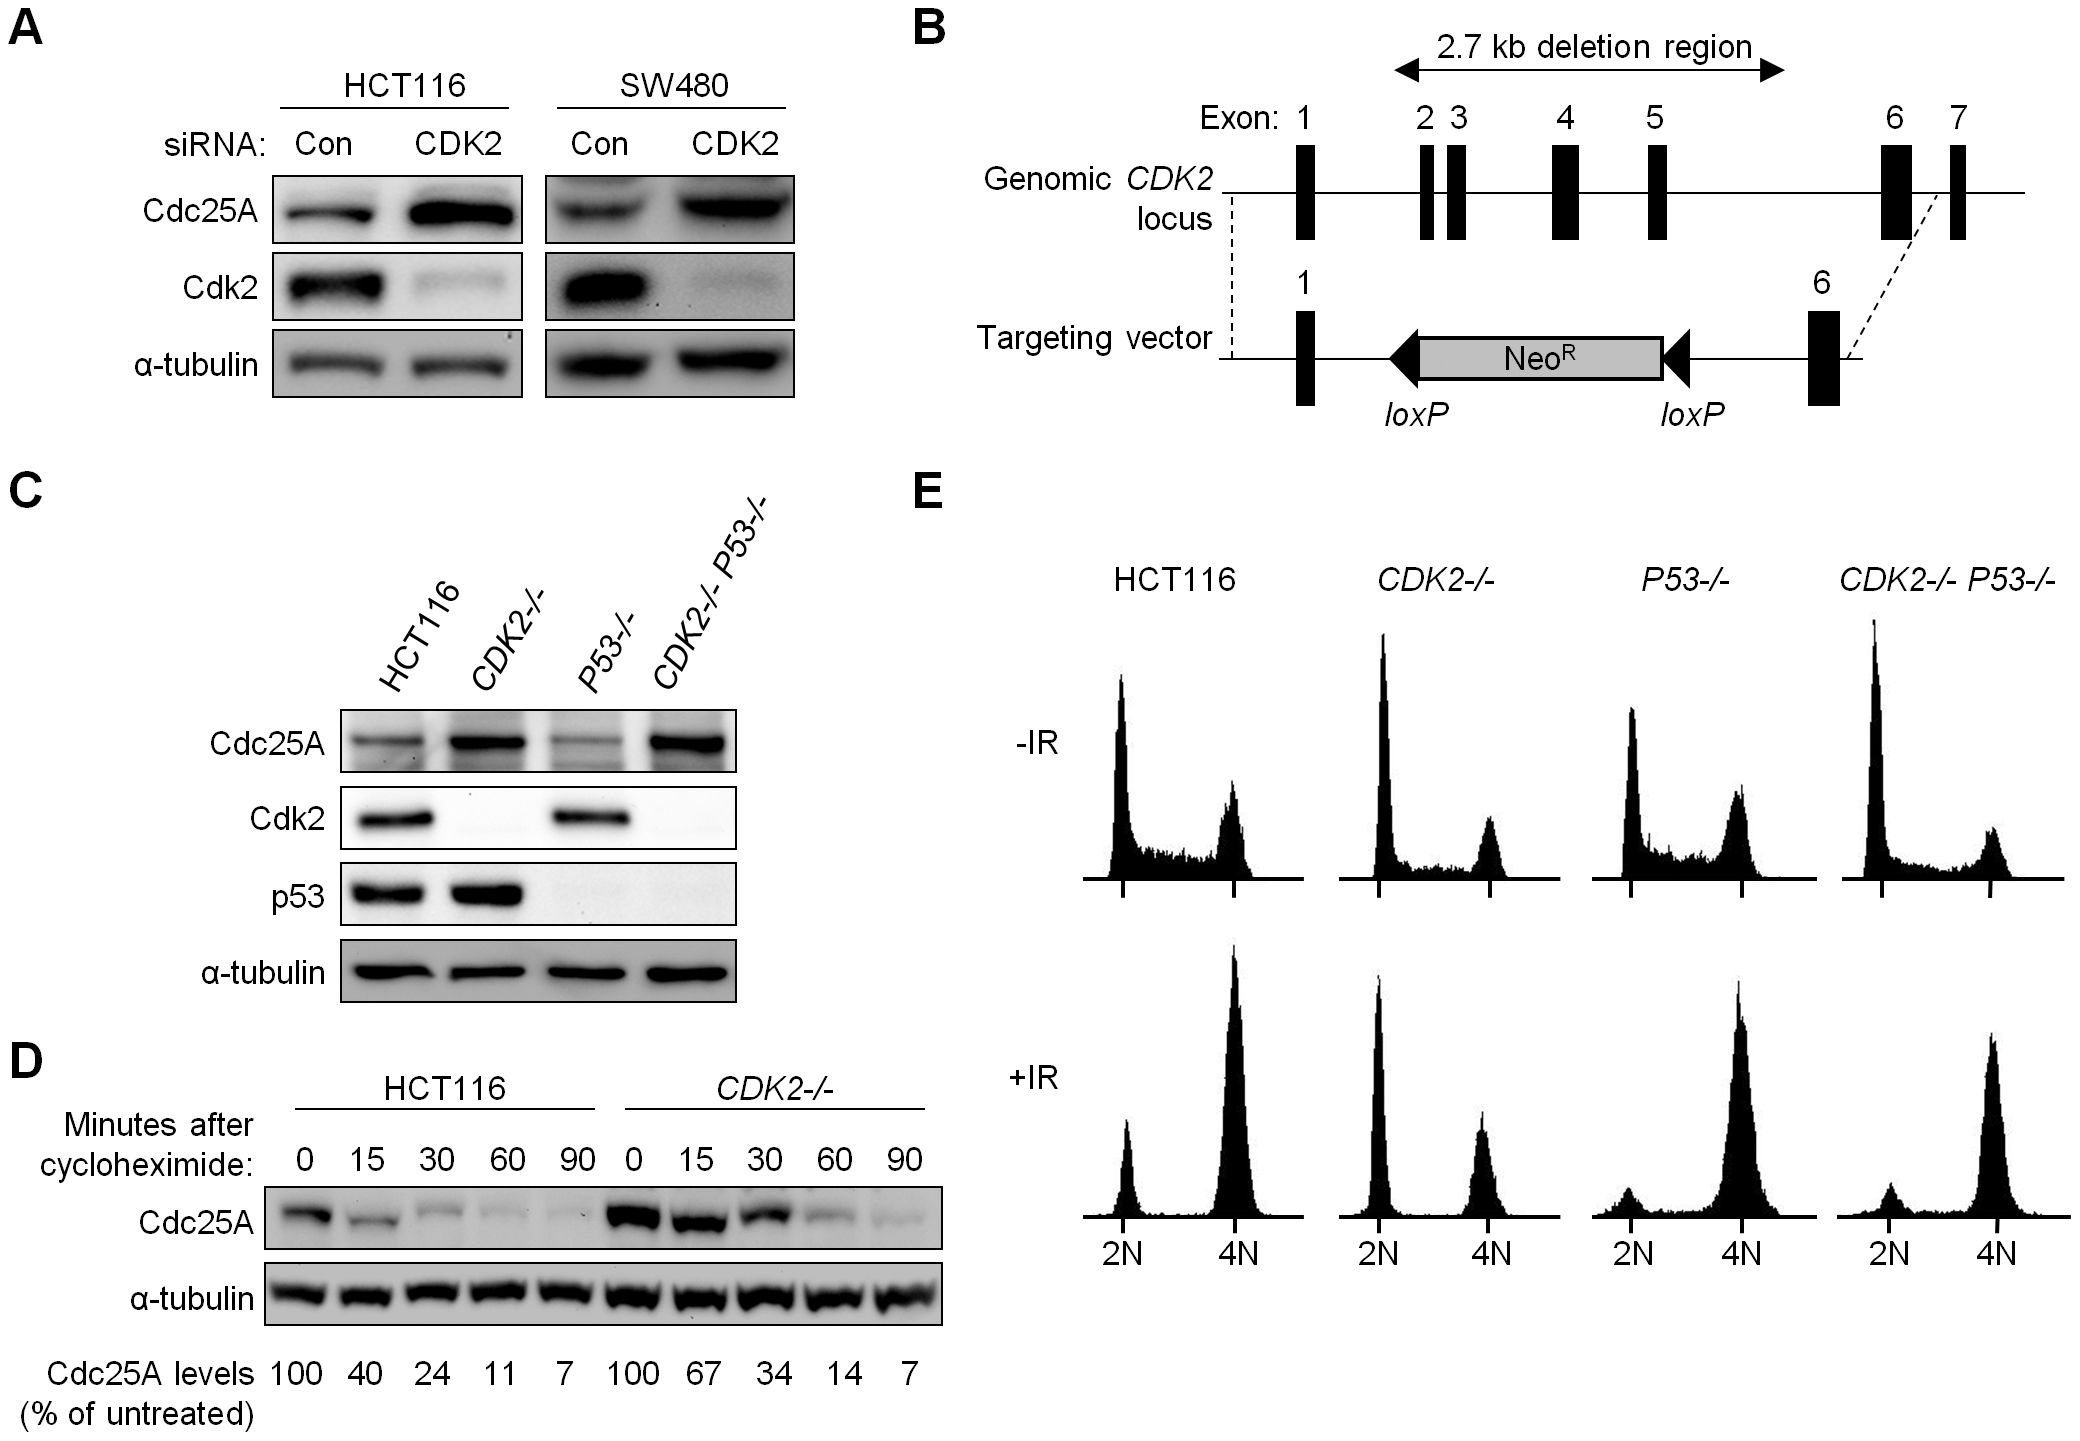 Altered cell cycle regulation and increased Cdc25A protein in Cdk2-deficient human cancer cells.